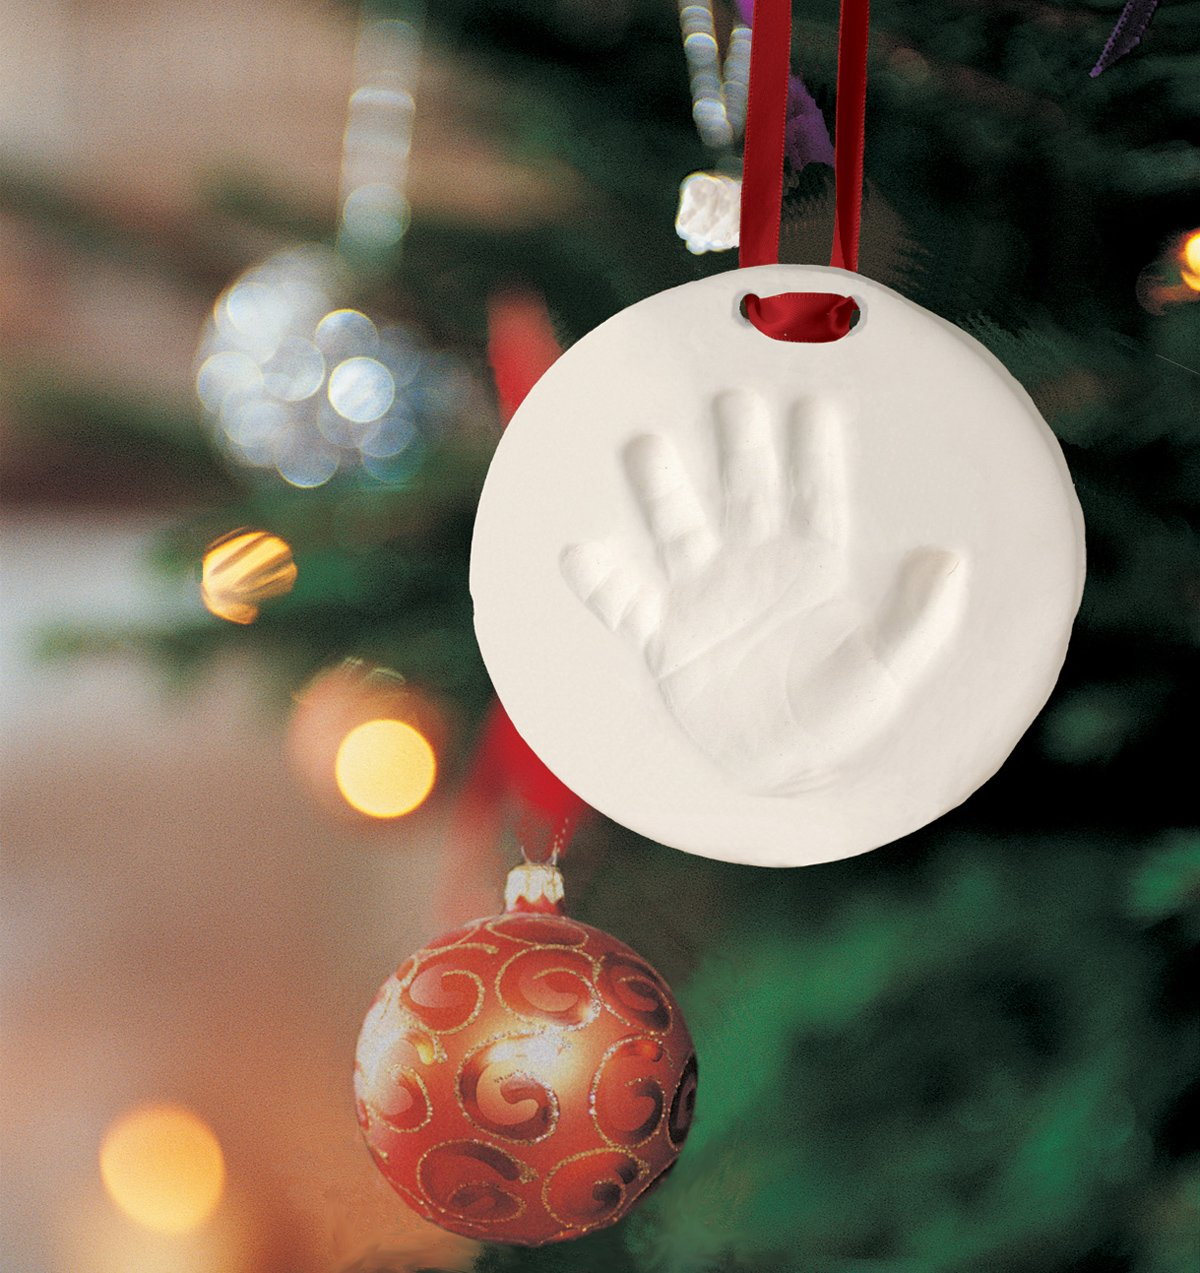 Amazon pearhead new and improved babyprints baby handprint amazon pearhead new and improved babyprints baby handprint or footprint keepsake ornament makes a perfect holiday gift holiday baby hand and solutioingenieria Images